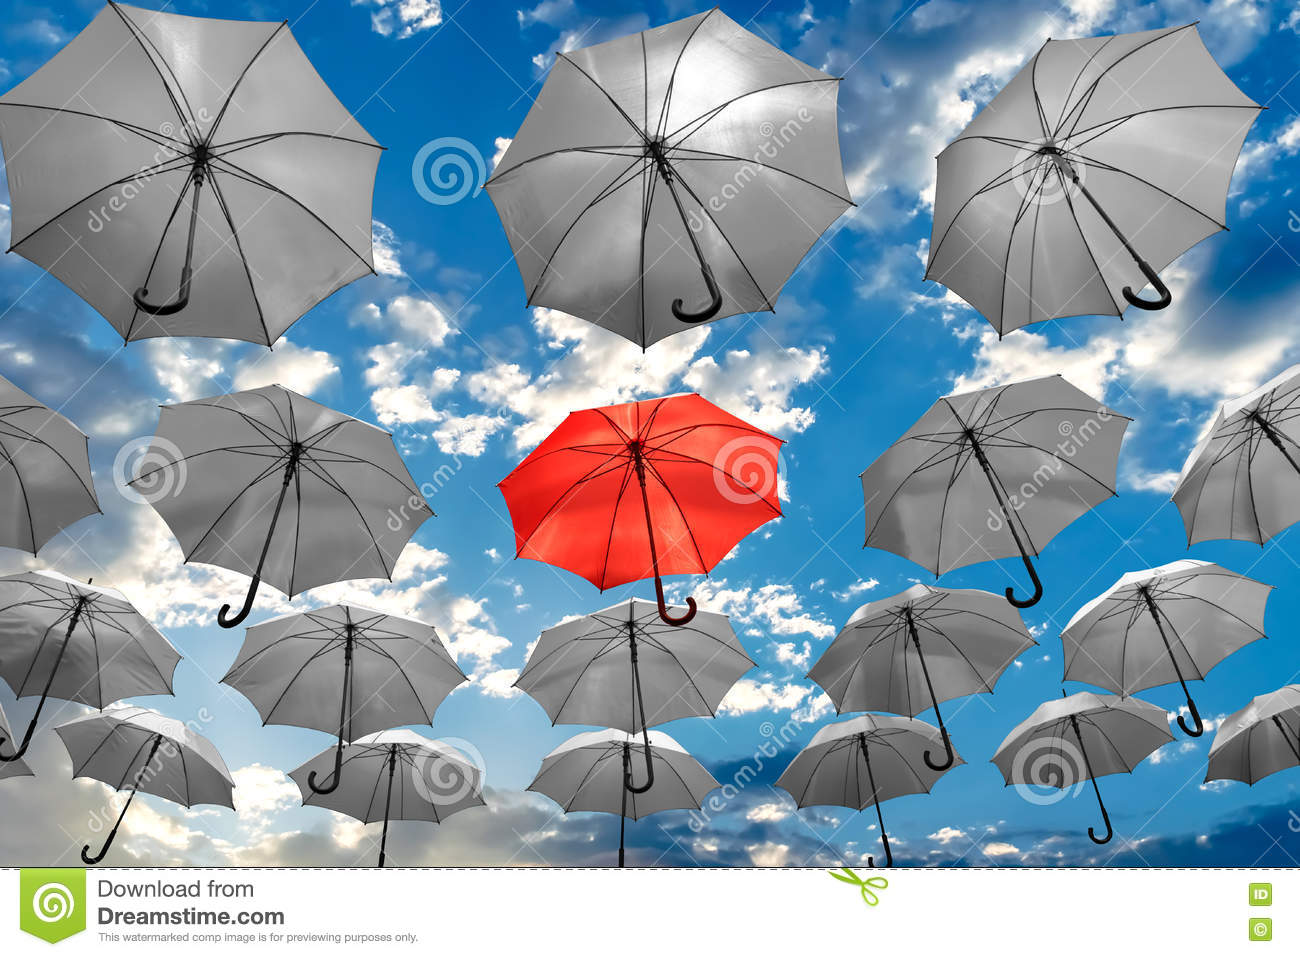 Umbrella standing out from the crowd unique concept mental health depression